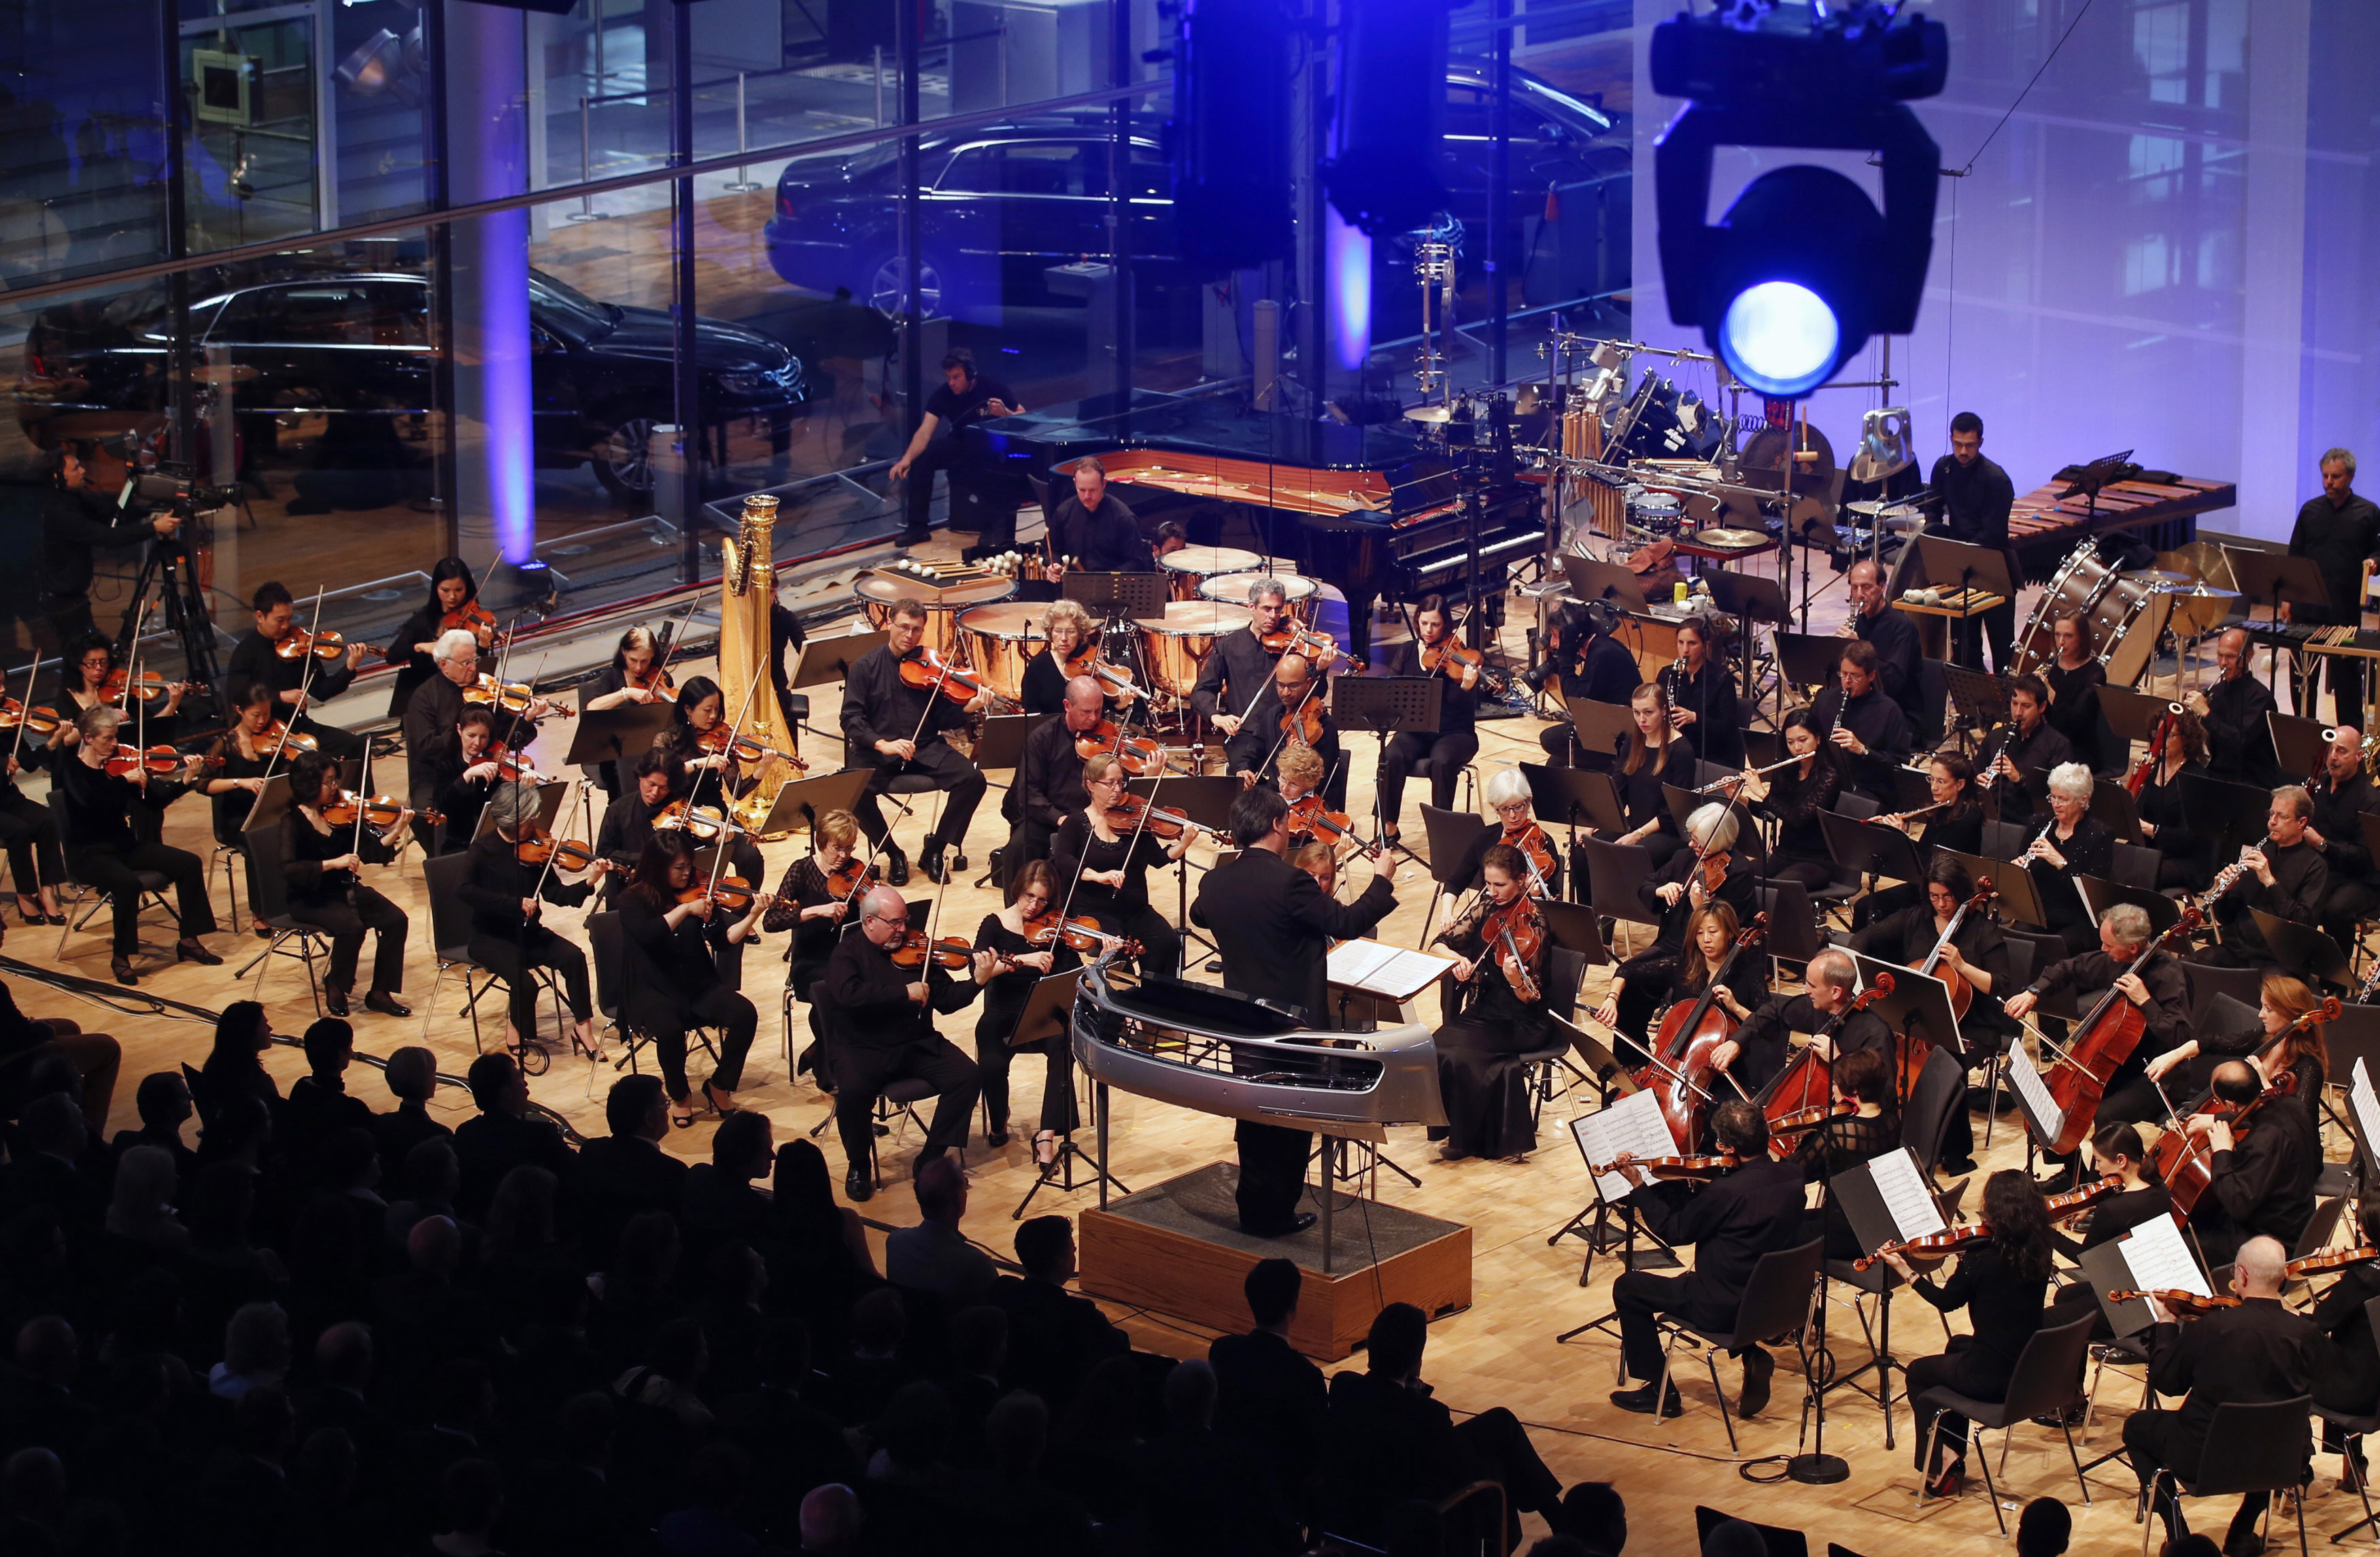 Gilbert, chief conductor of New York Philharmonic, leads a performance of the composition 'Kraft' inside the Glaeserne Manufaktur in Dresden